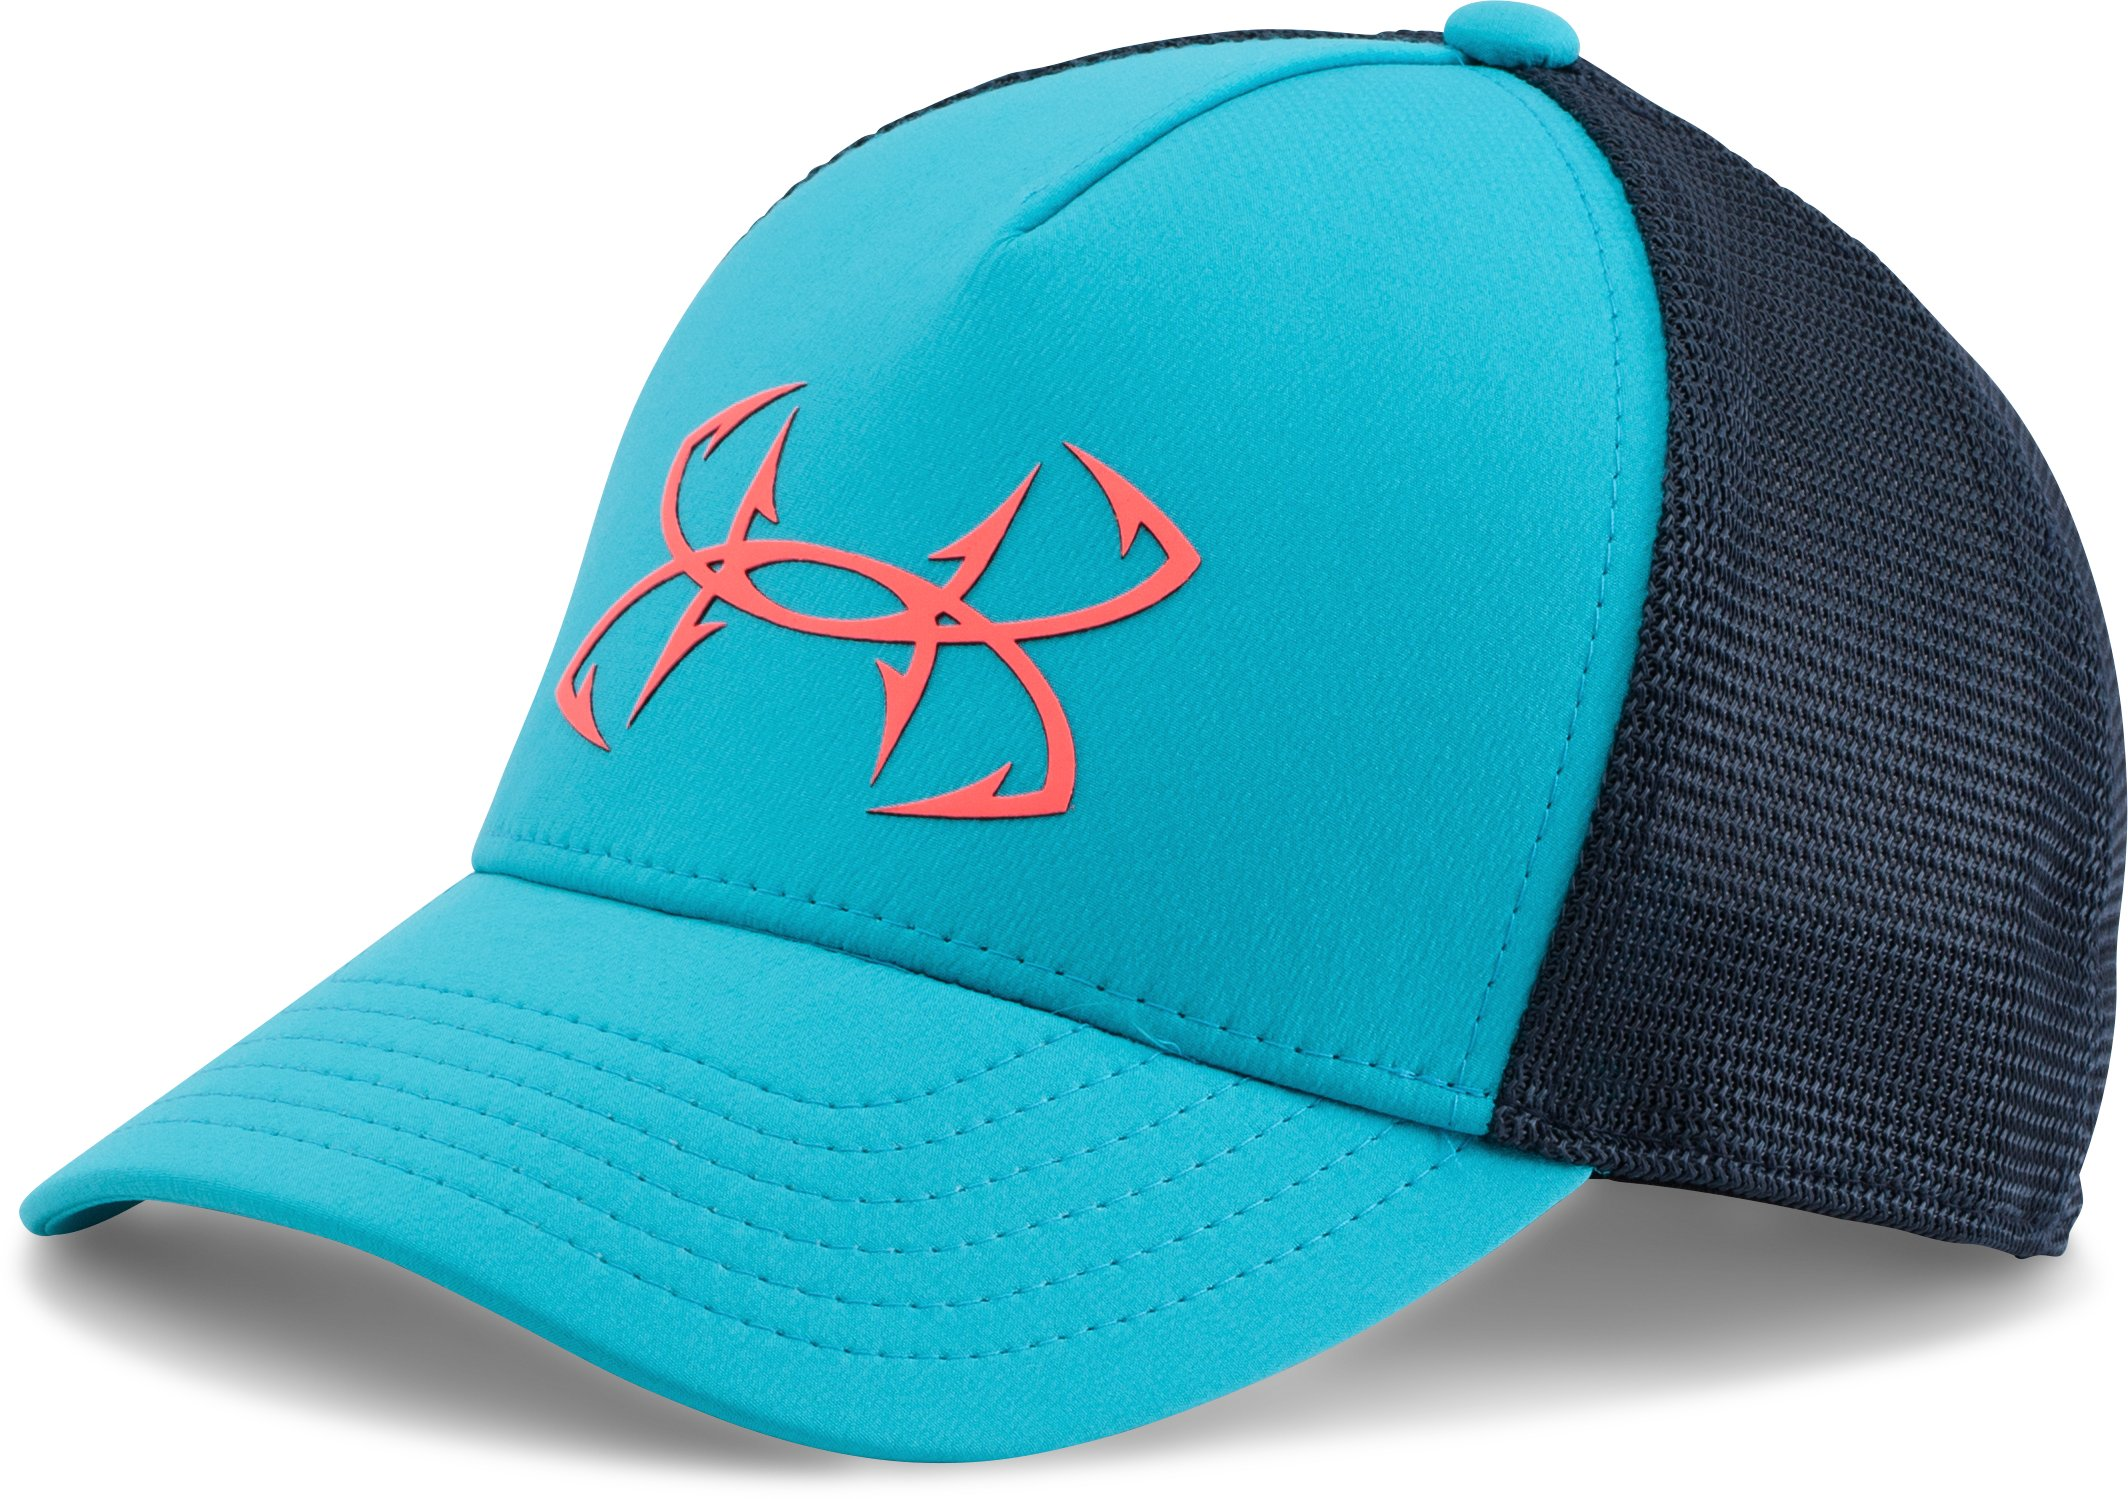 Women's UA Fish Hook Mesh Cap, BOLD AQUA